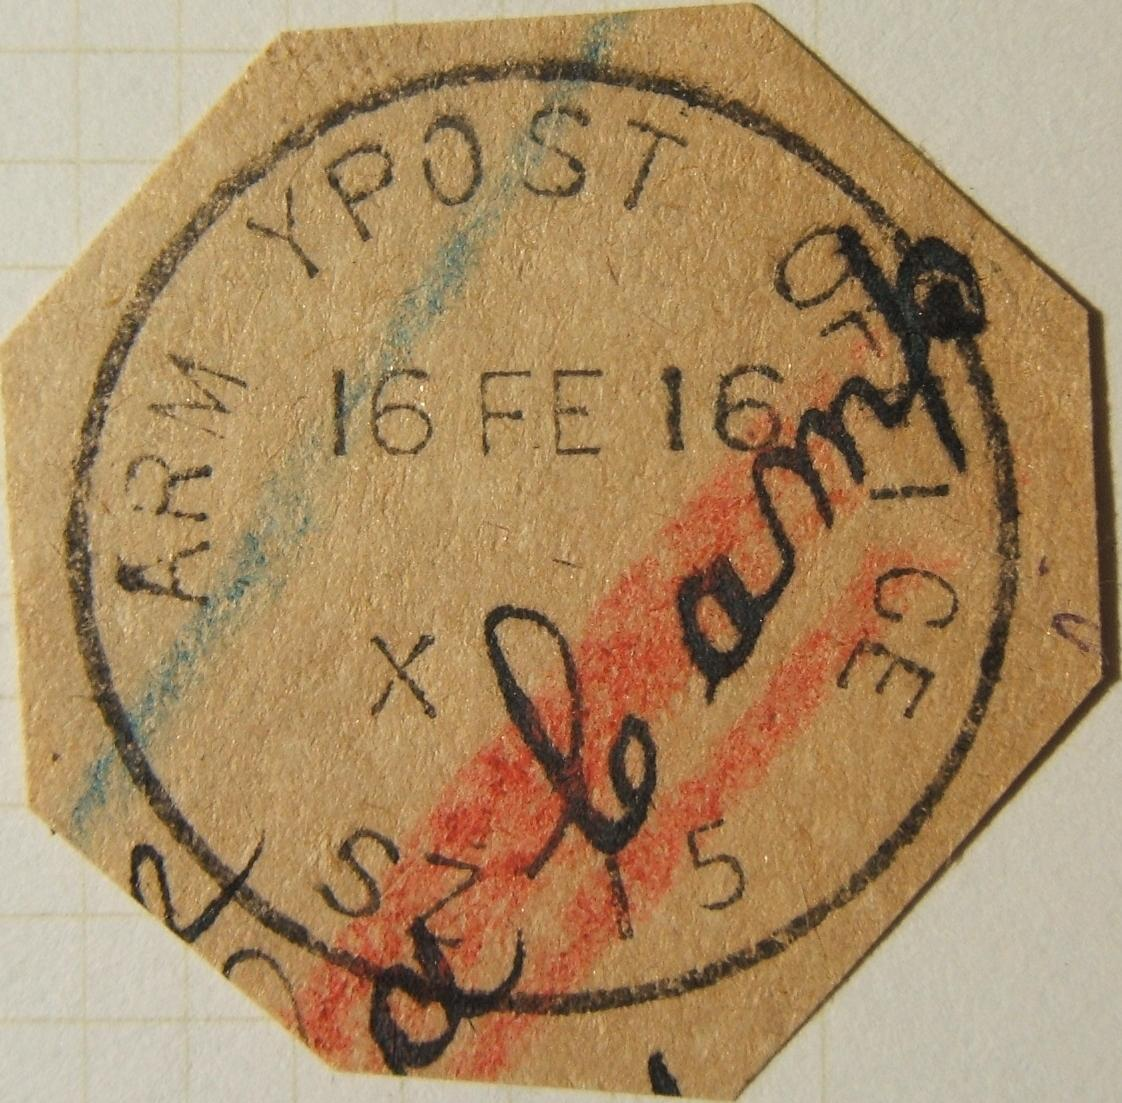 2/1916 WWI Egypt British military mail unrecorded APO SZ 15 postmark predating the APO